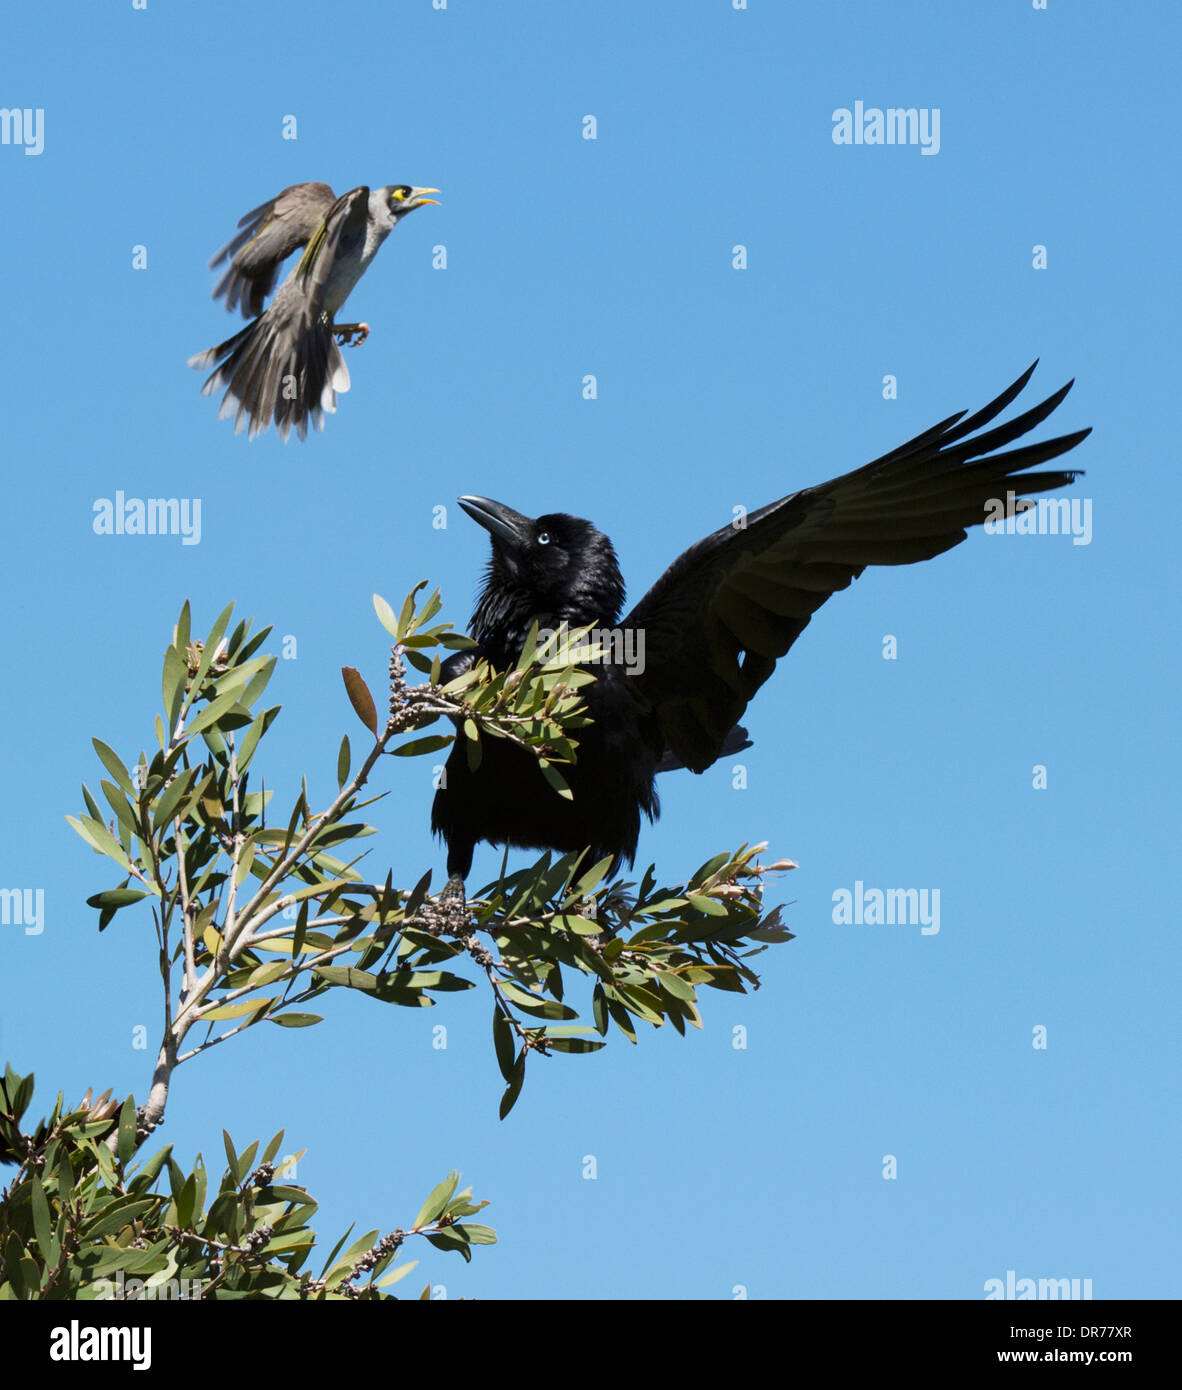 Australian Raven (Corvus coronoides) being mobbed by a Noisy Miner - Stock Image